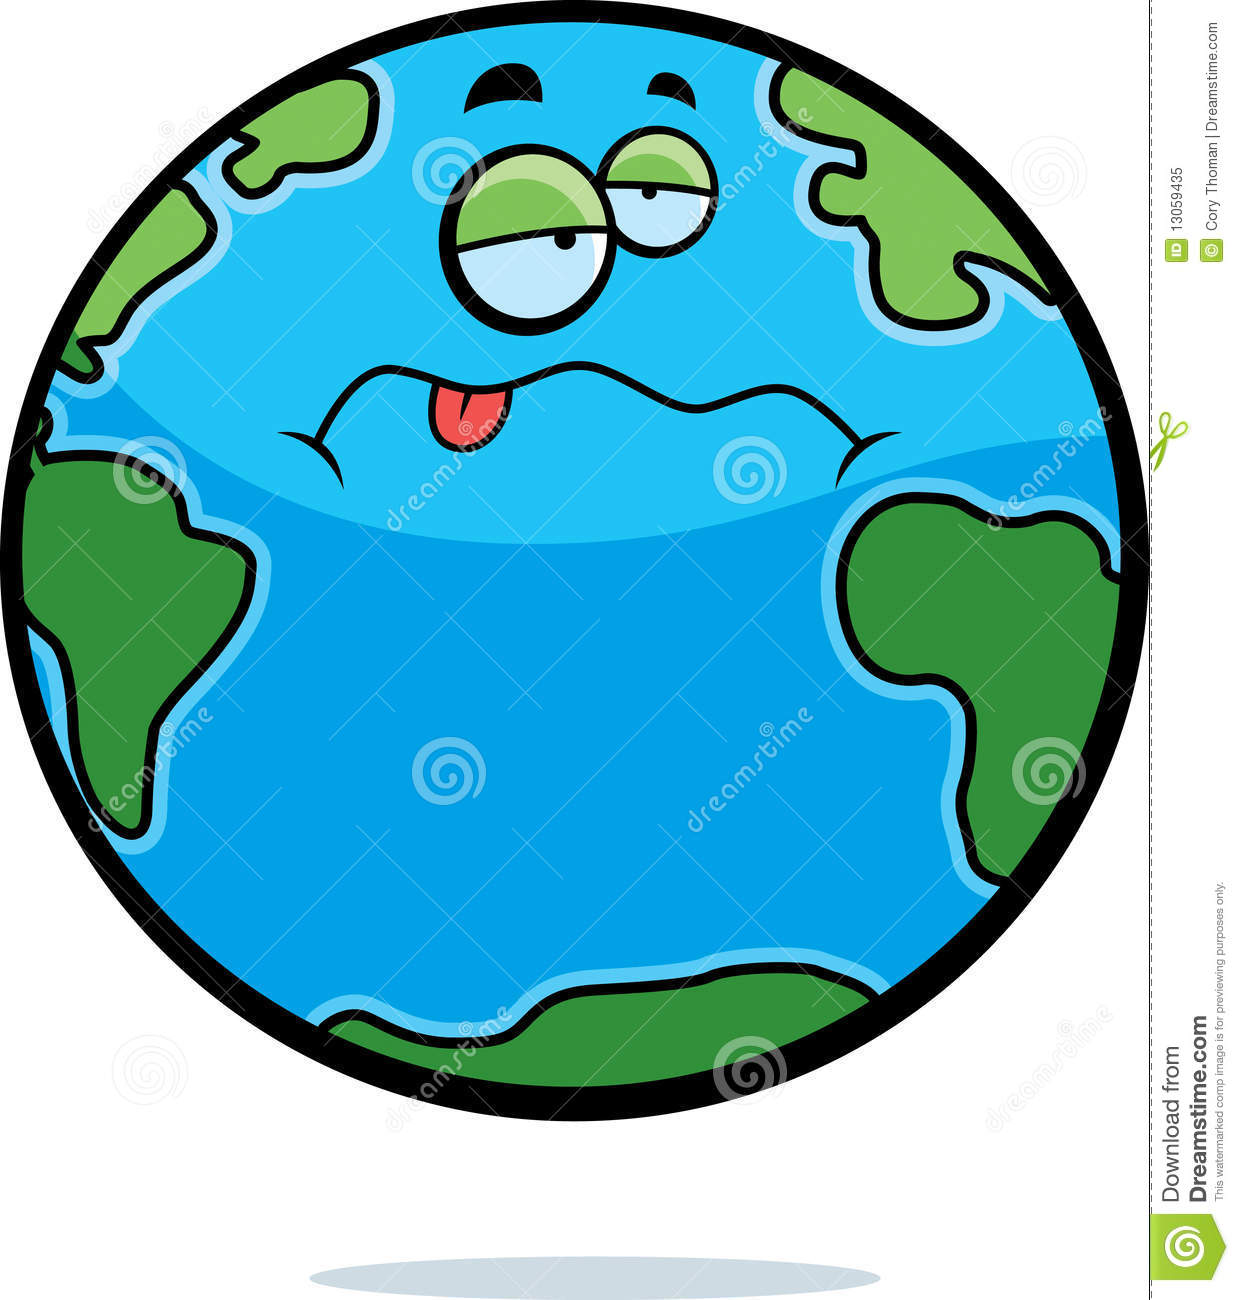 sick earth stock vector illustration of earth  nauseous images of planet earth clip art Planet Mart Cliart